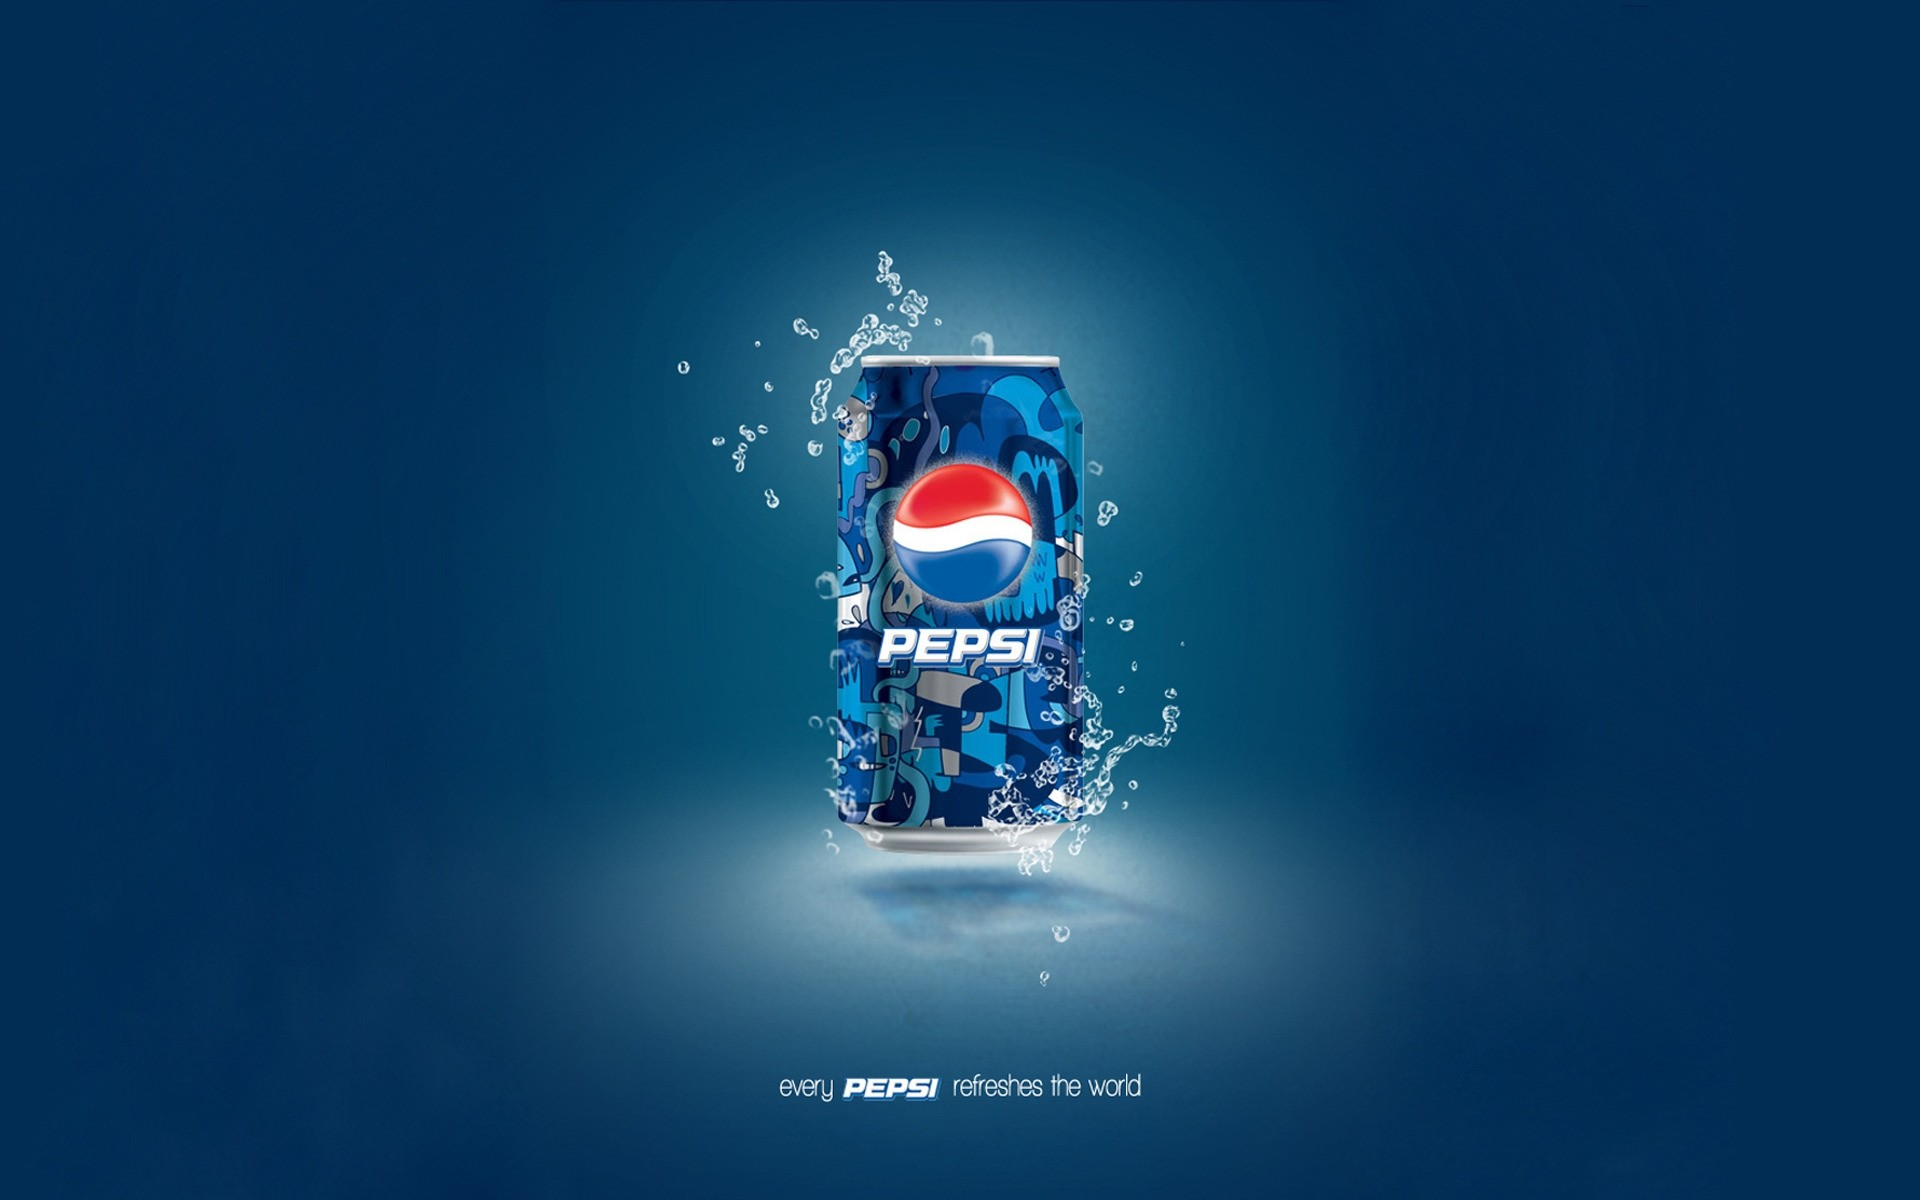 pepsi philippines corporate profile Pepsi-cola products philippines inc is the exclusive bottler of pepsico beverages in the philippines, with a relationship spanning 66 years lotte chilsung, one of the biggest beverage companies in south korea, is the lead shareholder of pcppi as an independently-listed company and co-manages it with pepsico.